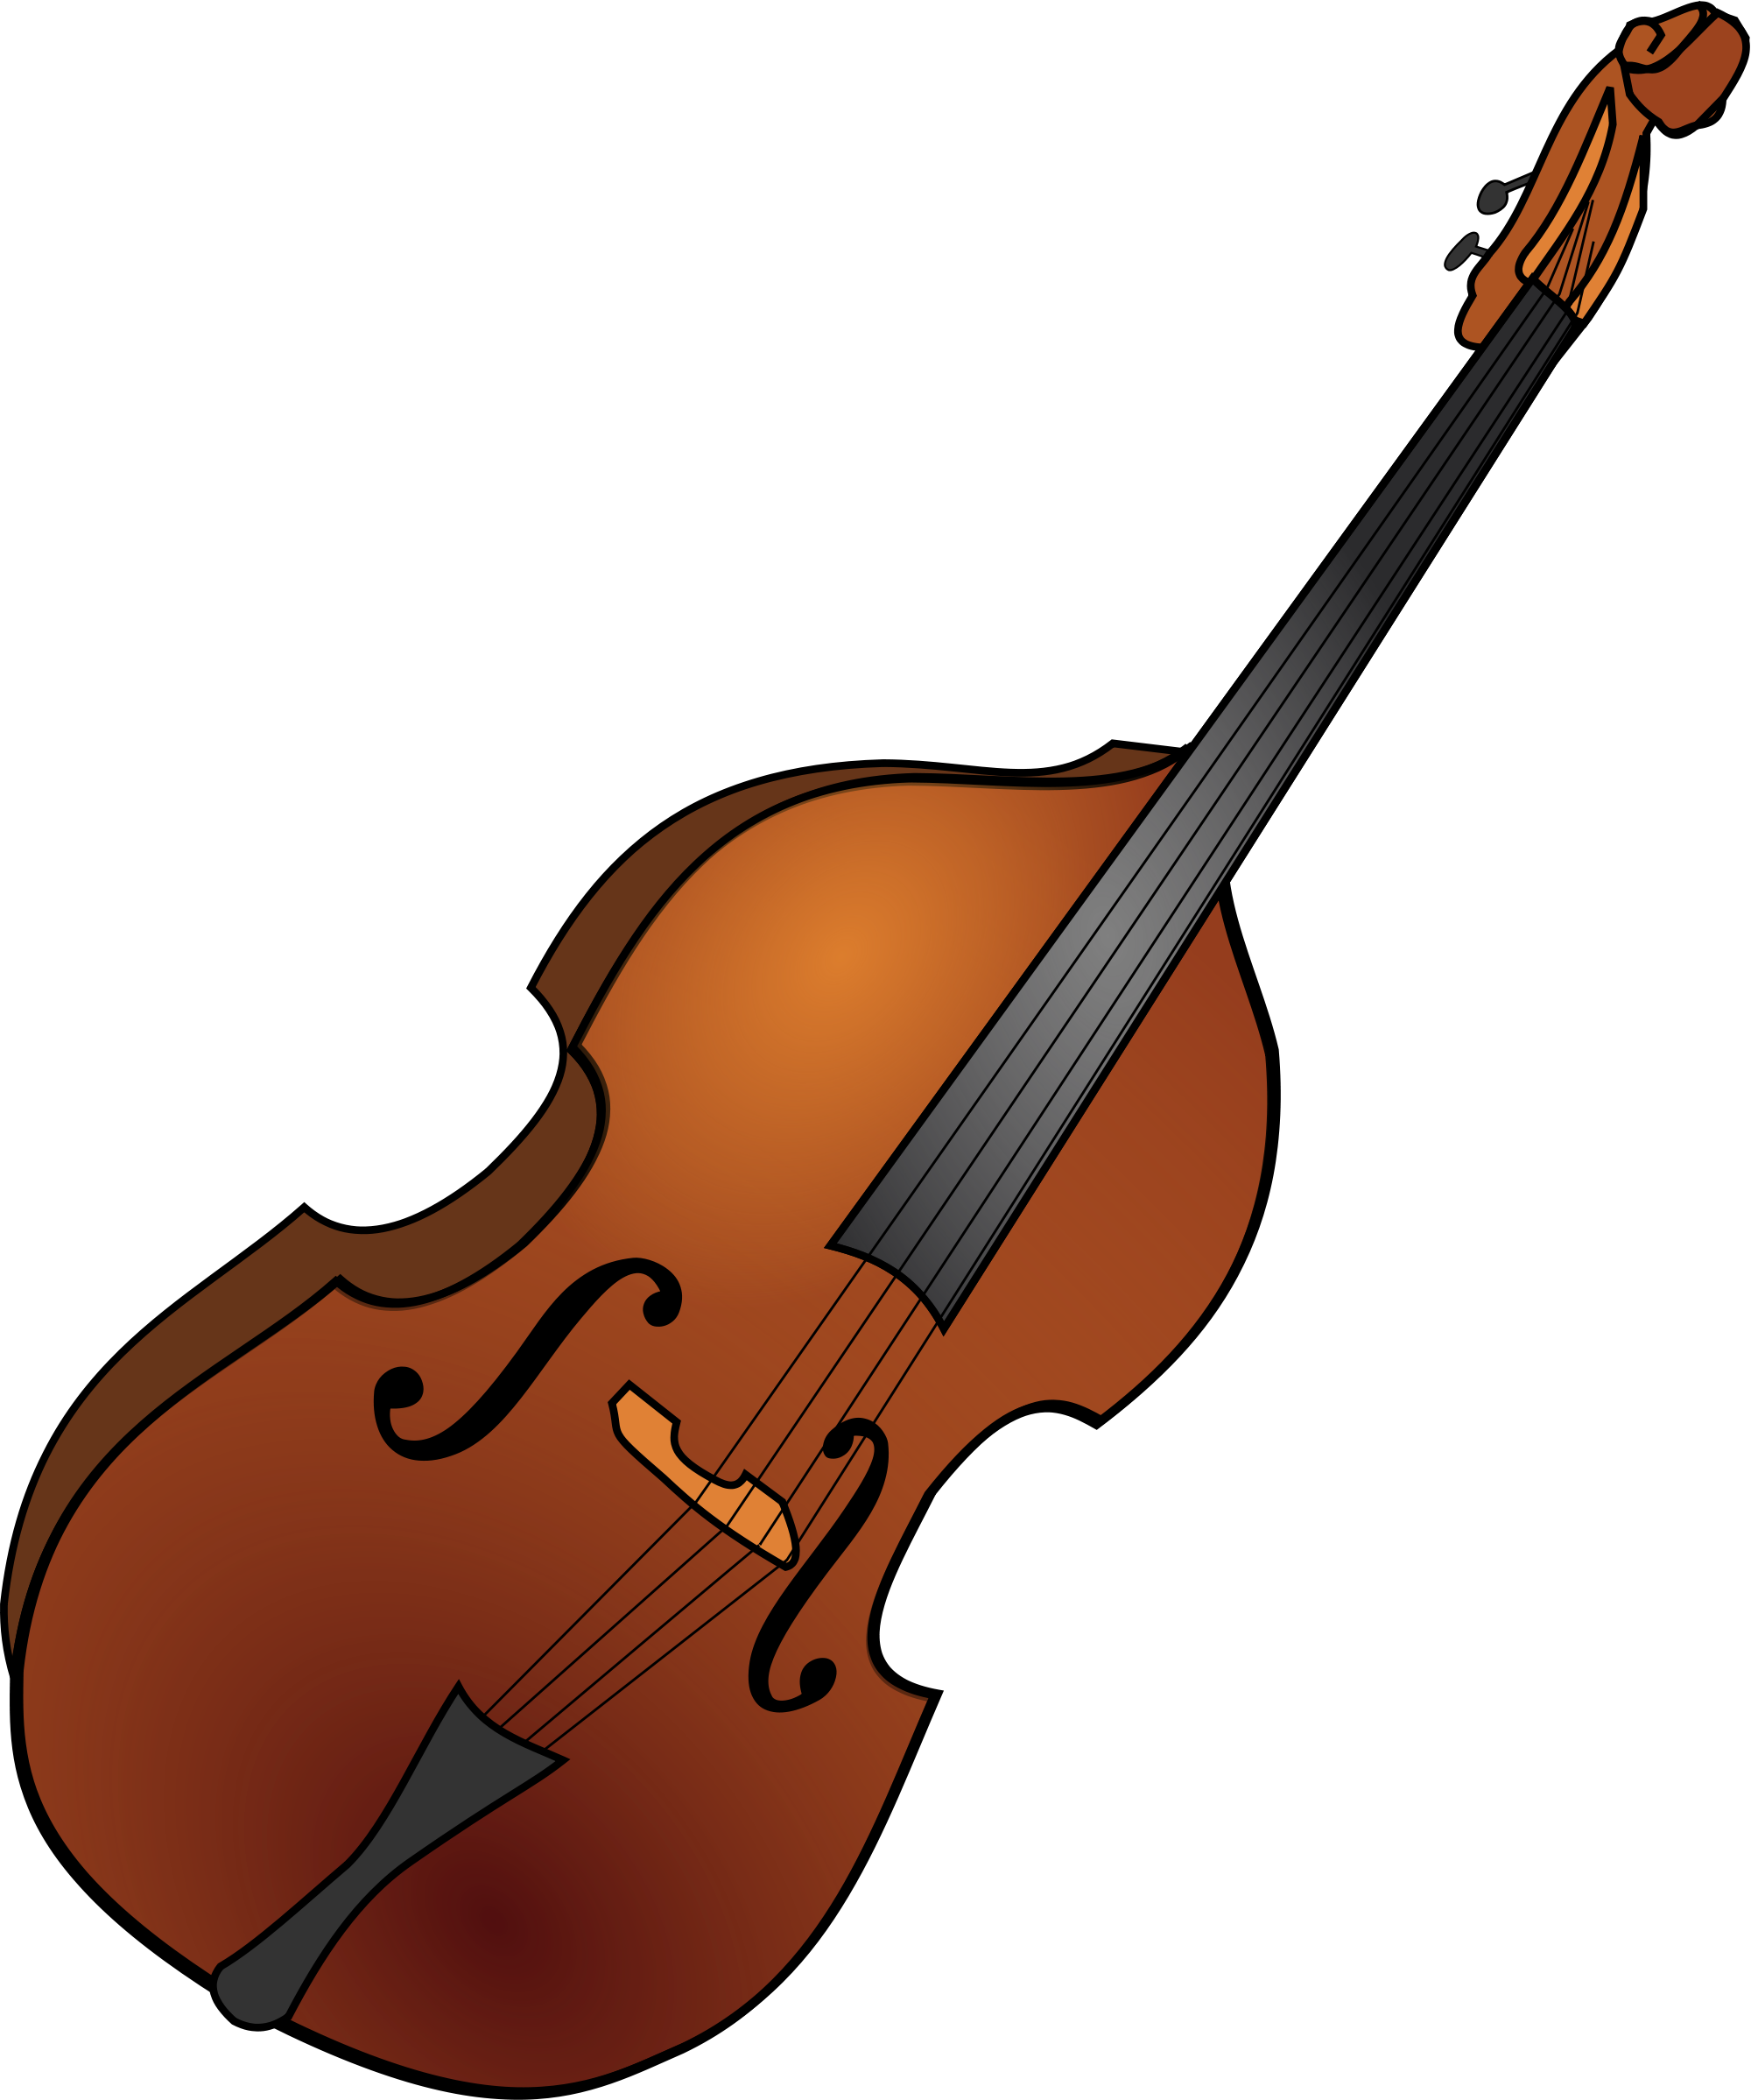 png free download File double wikimedia commons. Bass svg clip art